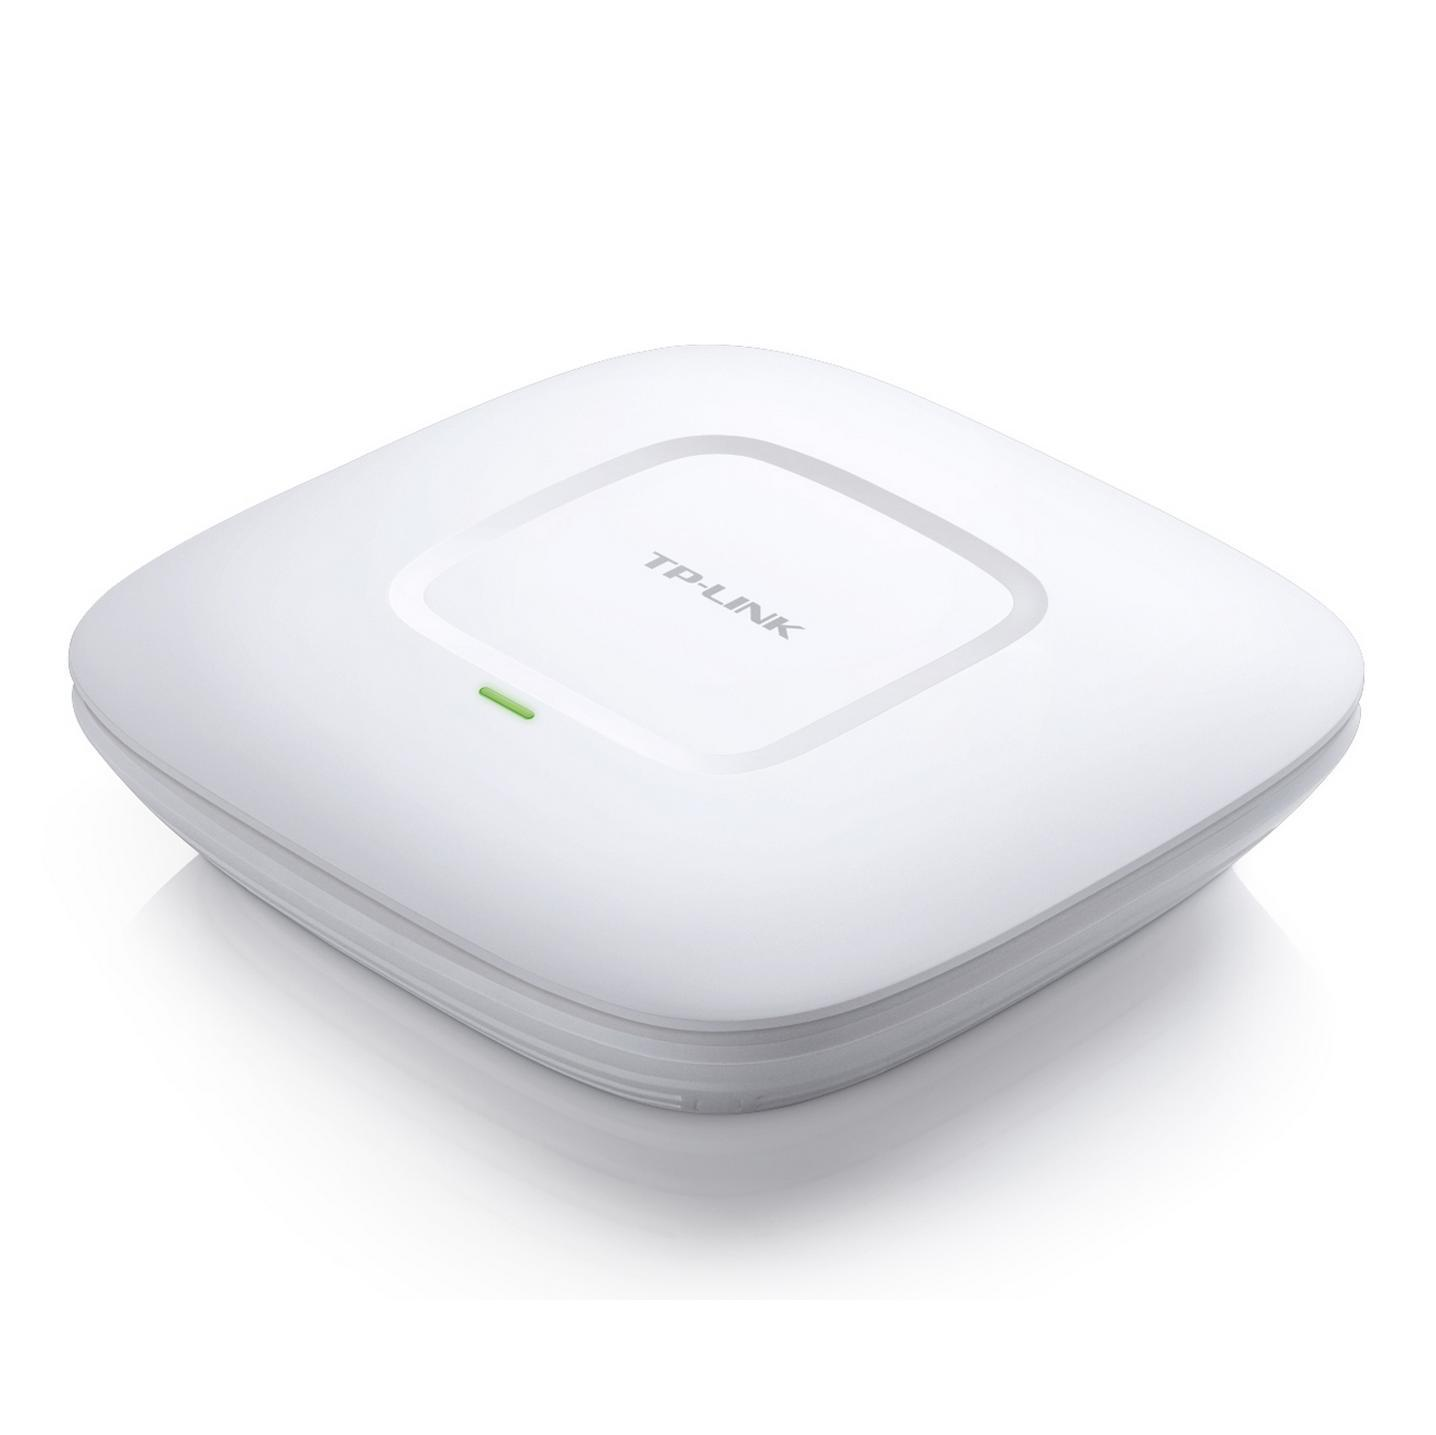 TP-Link EAP110 access point